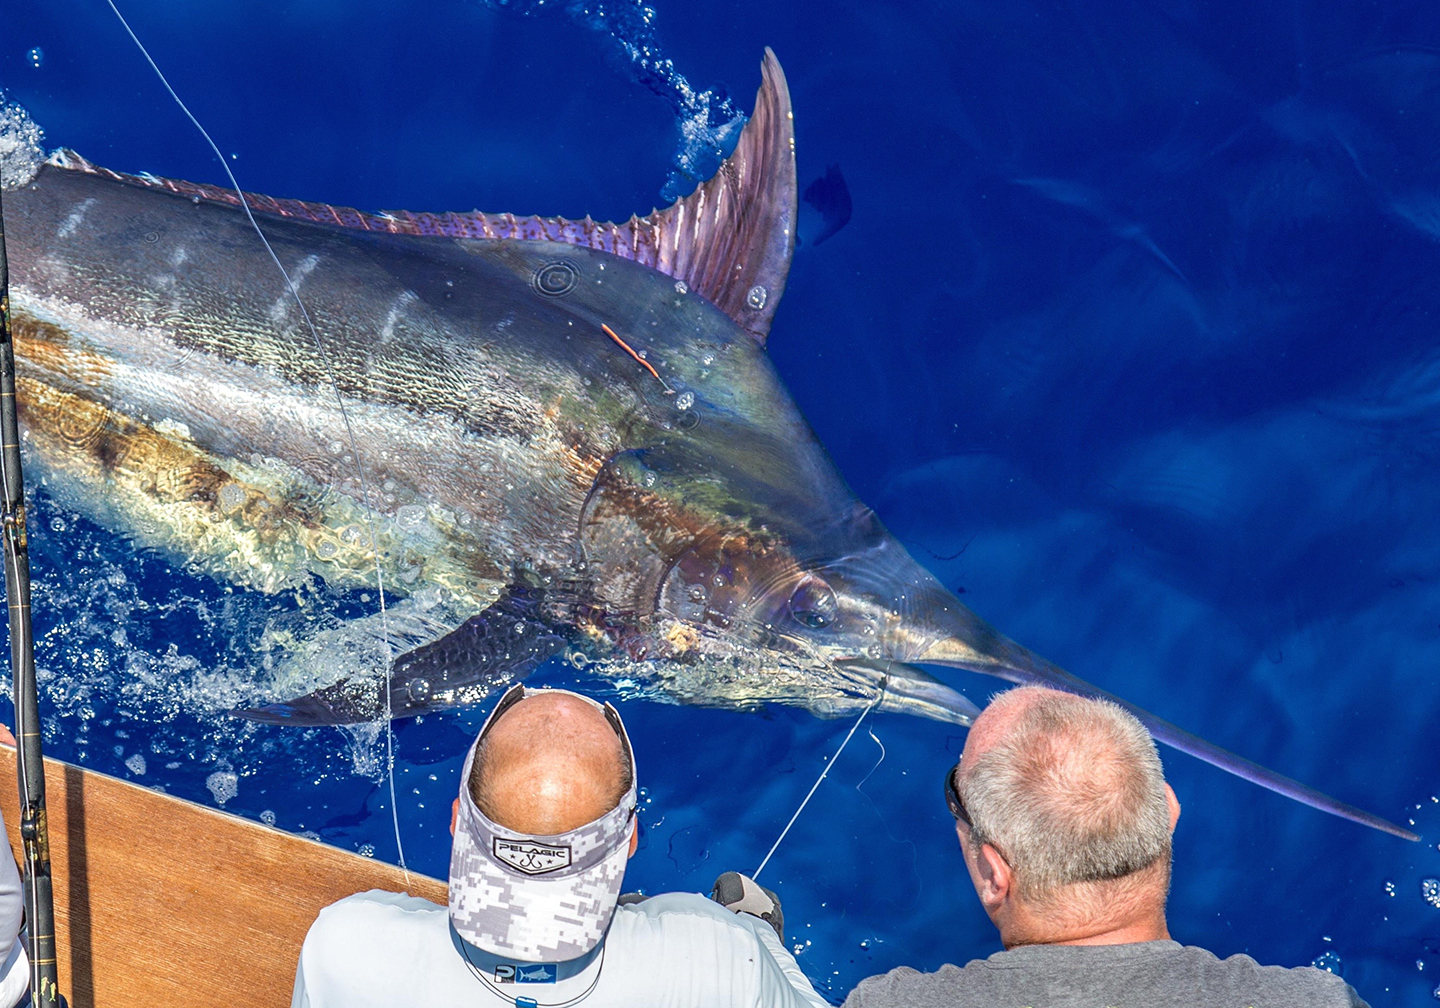 Two anglers looking at a huge Blue Marlin in the water next to their boat